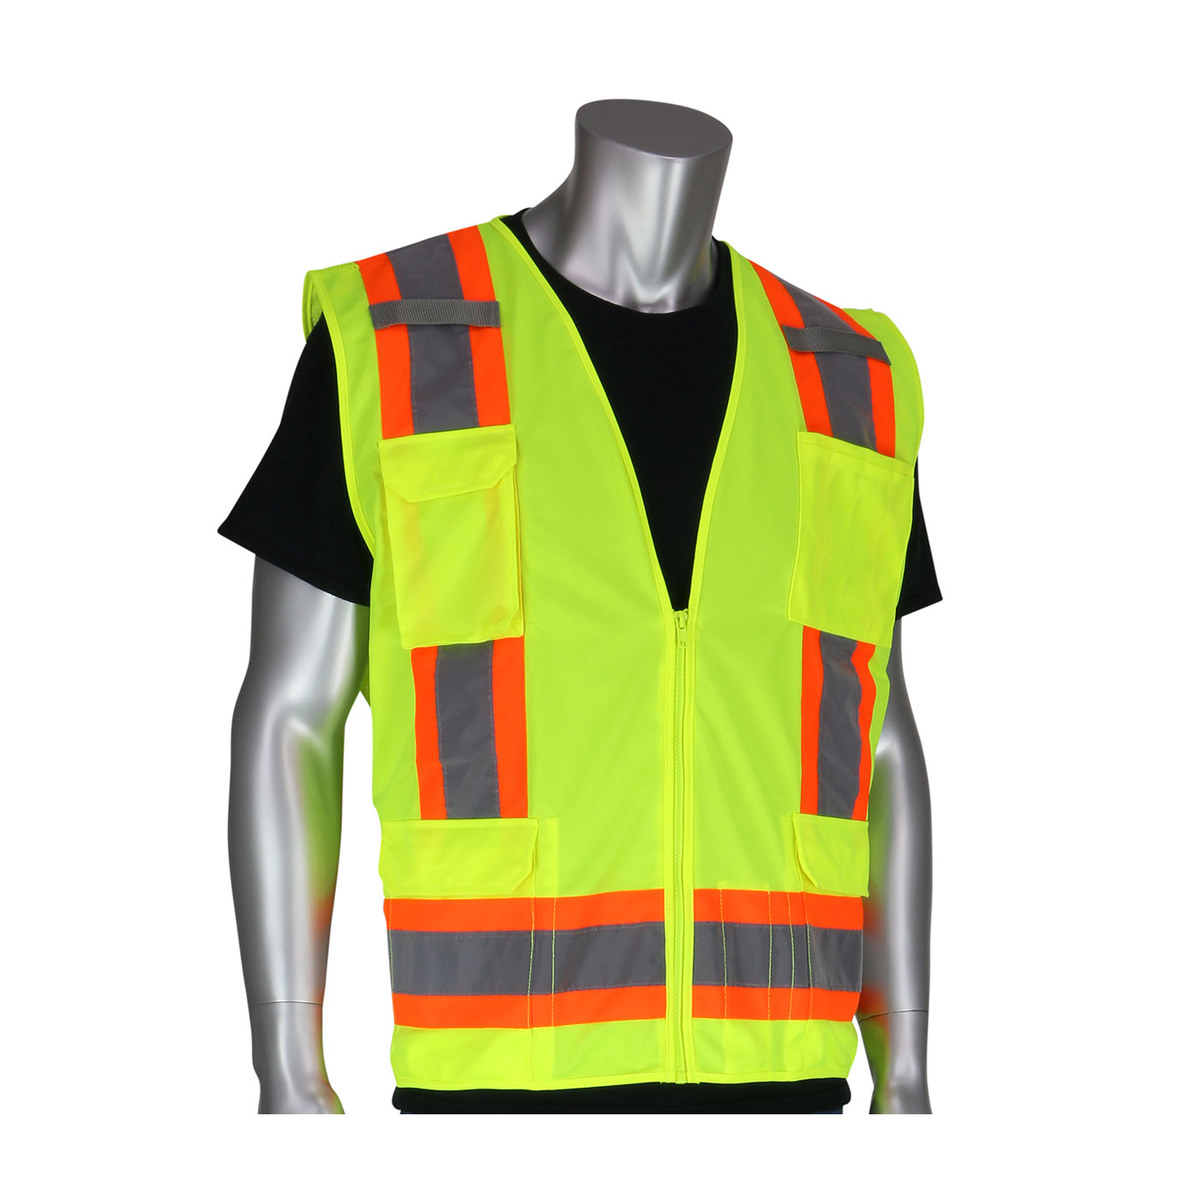 PIP High Visibility Vest 302 0500 YEL2X, ANSI Class 2, Size